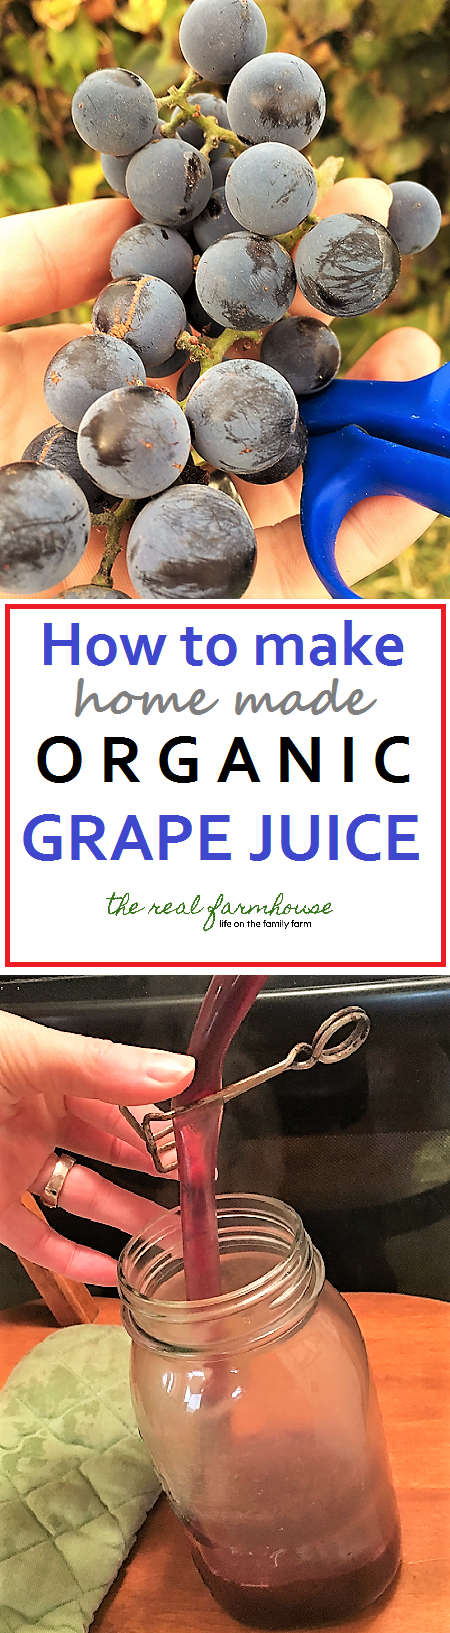 How to make home made organic grape juice.